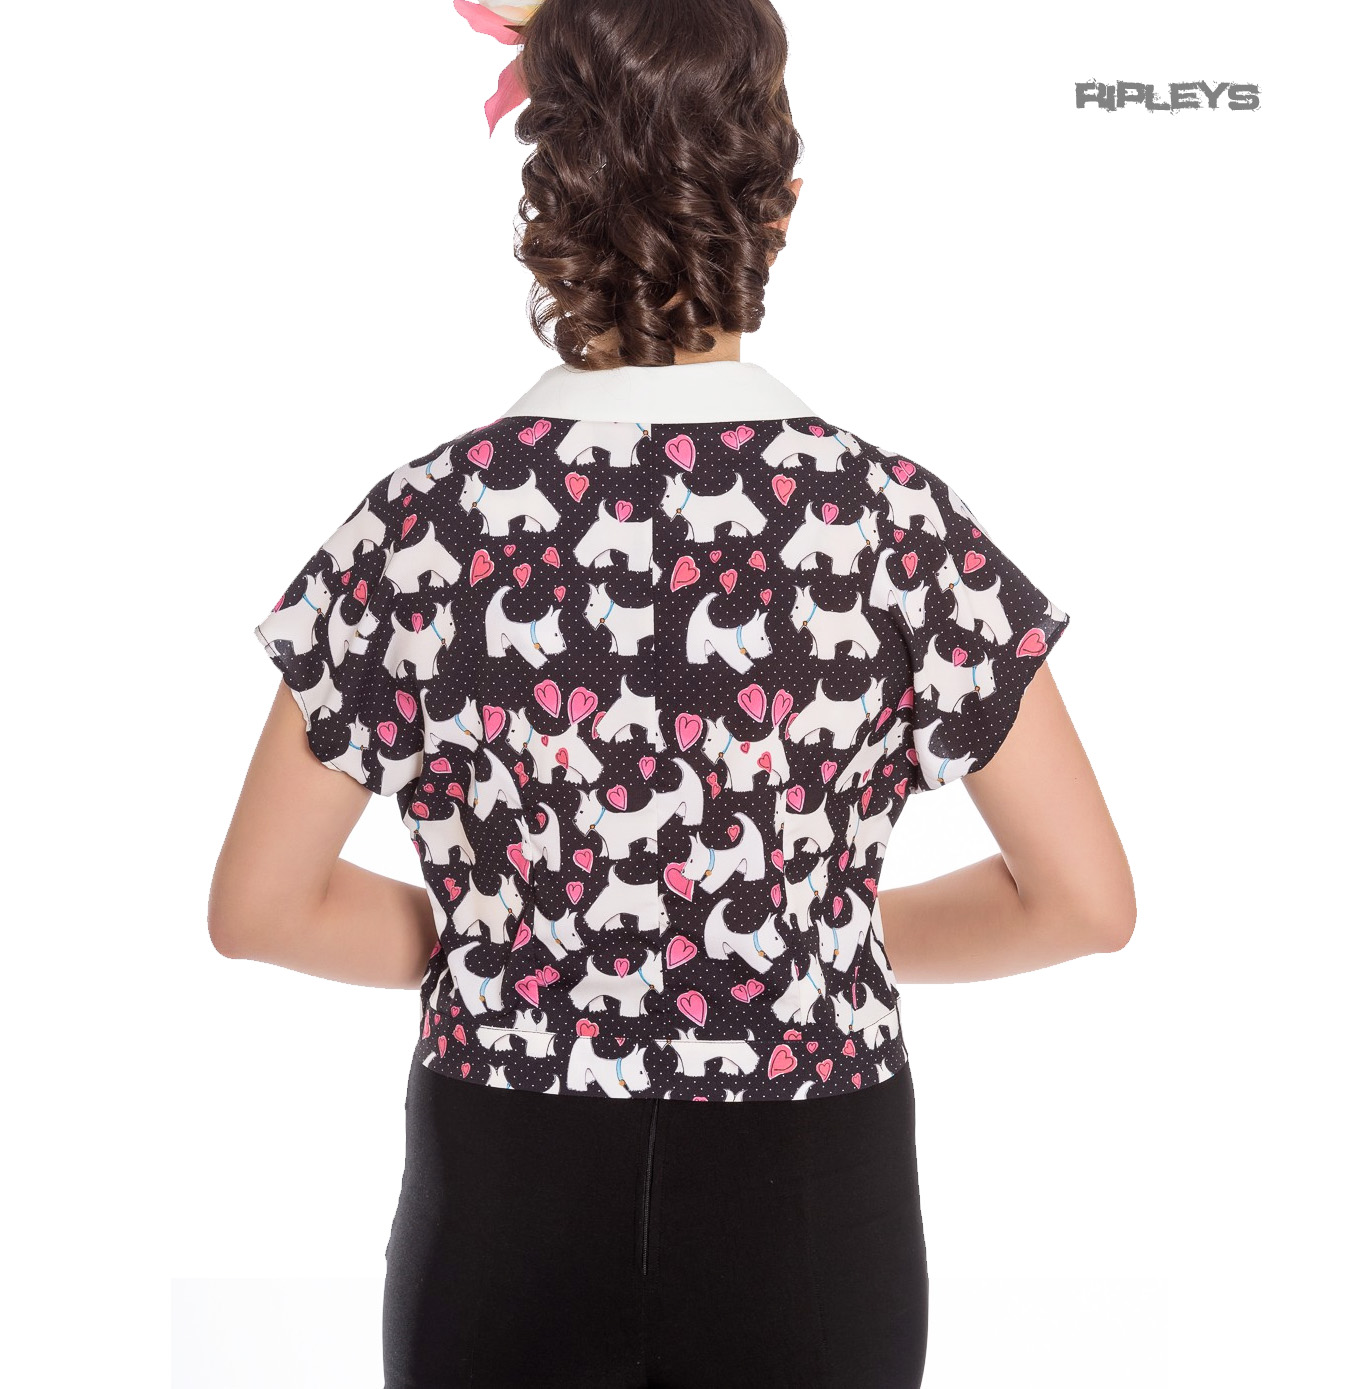 Hell-Bunny-50s-Retro-Top-Scottie-Dog-Heart-AGGY-Cropped-Blouse-Shirt-All-Sizes thumbnail 20